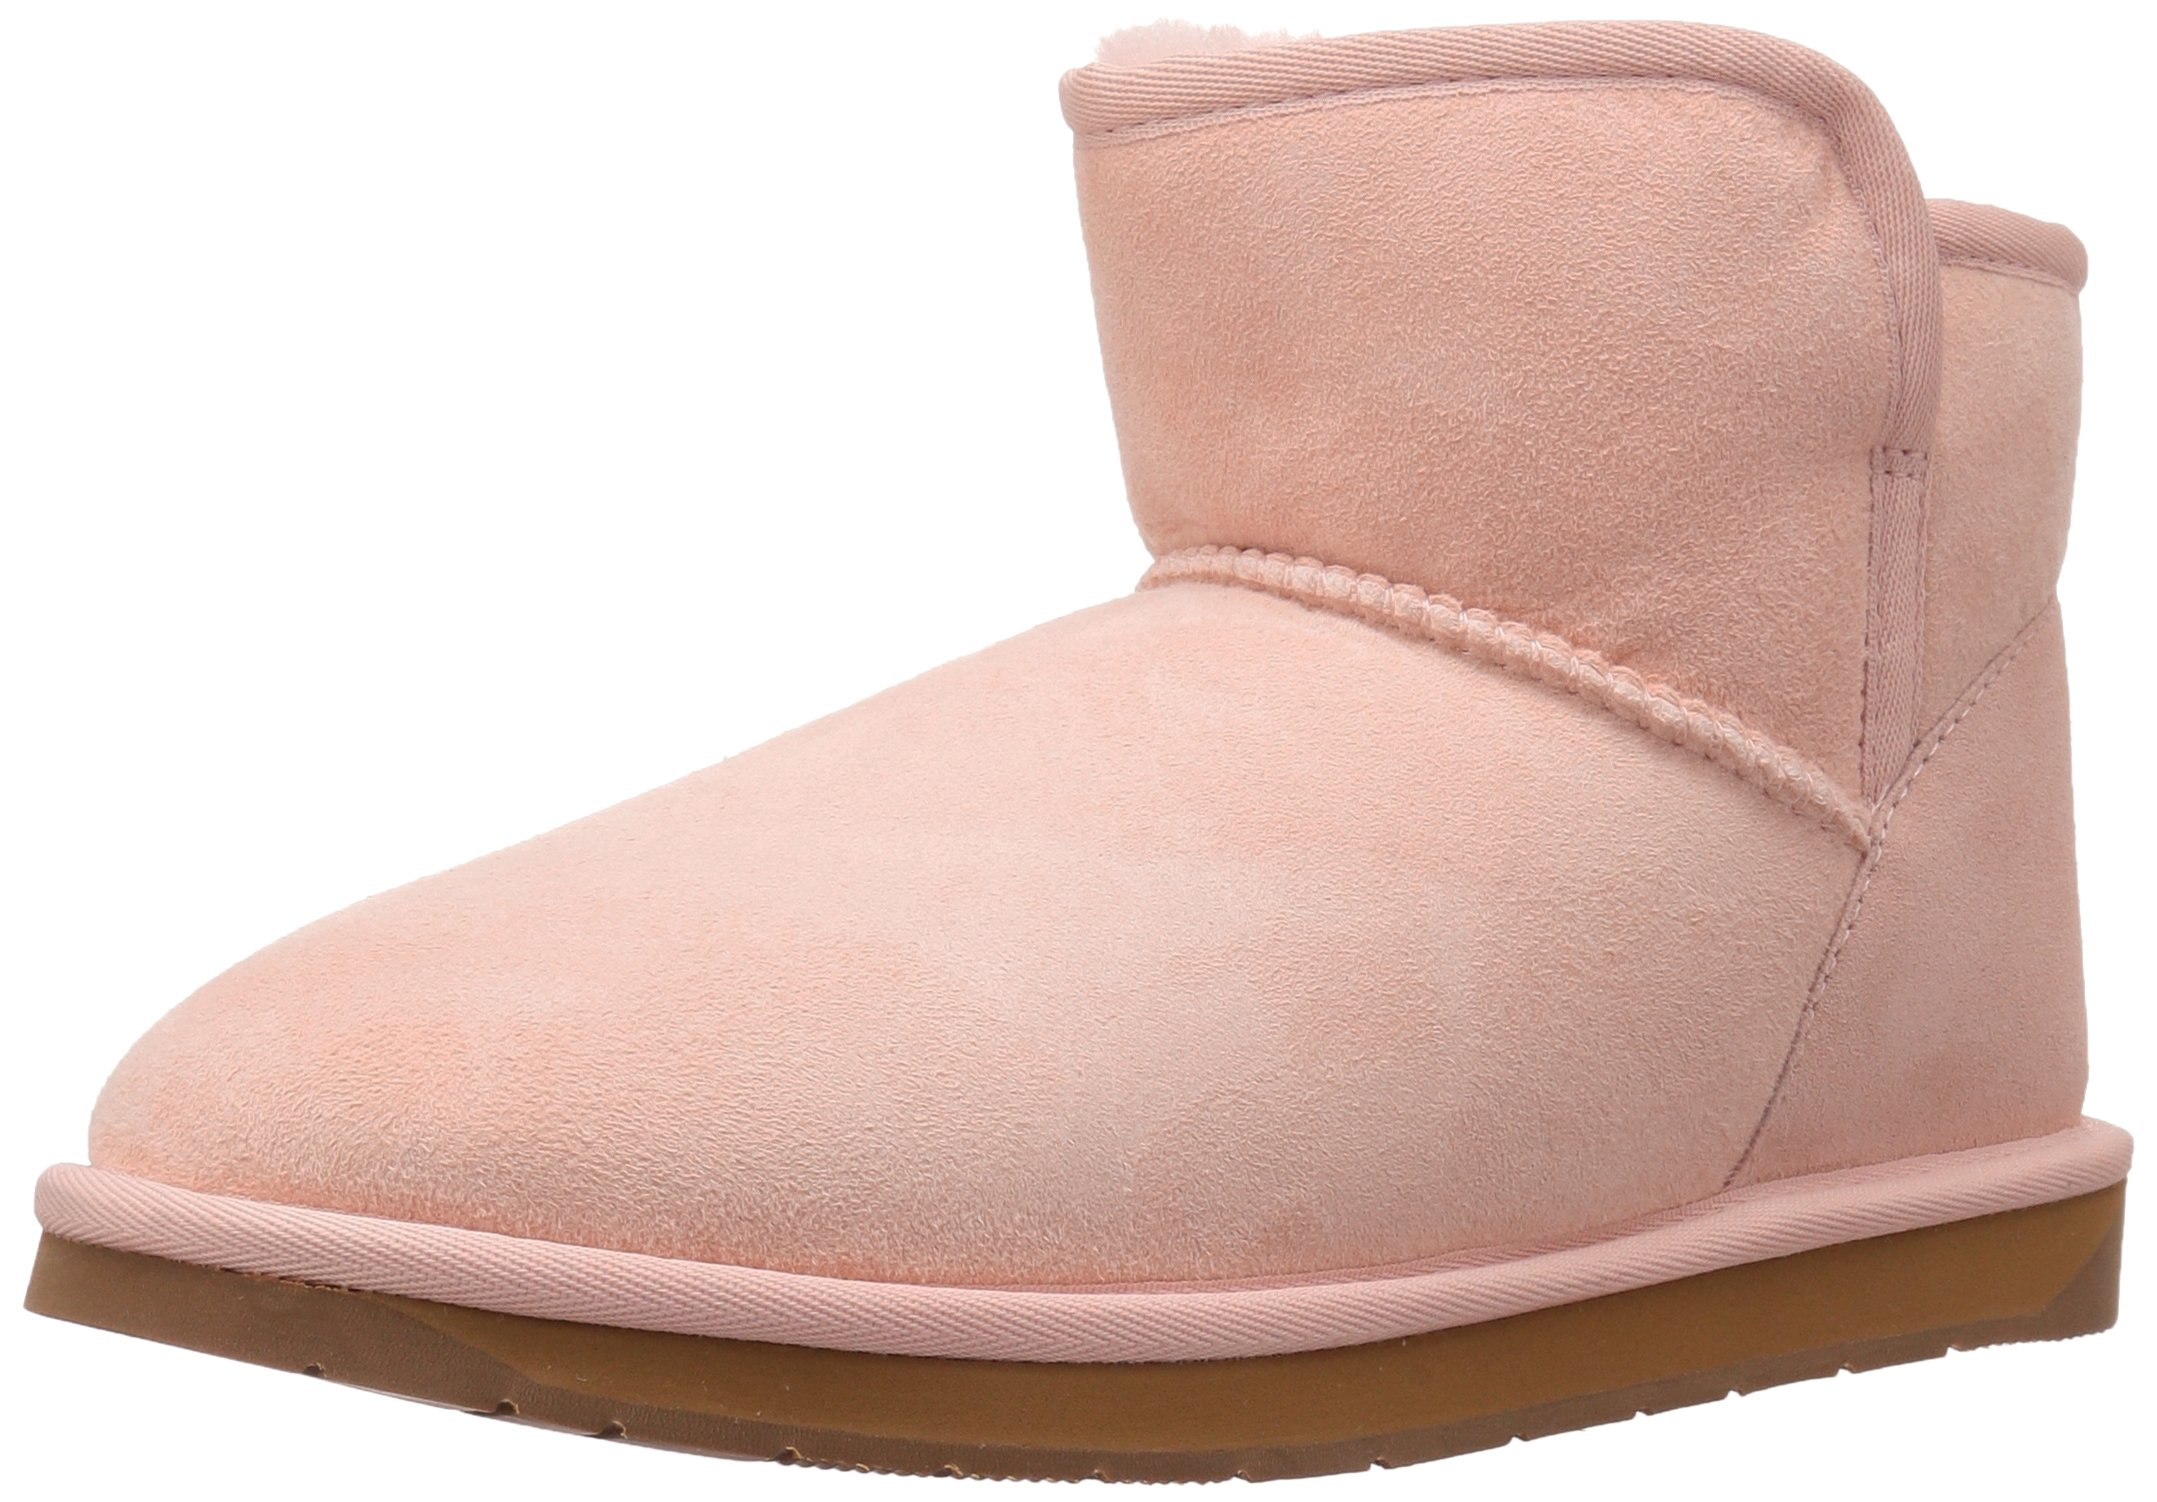 206 Collective Women's Bellevue Shearling Ankle Boot, Pink, 11 B US